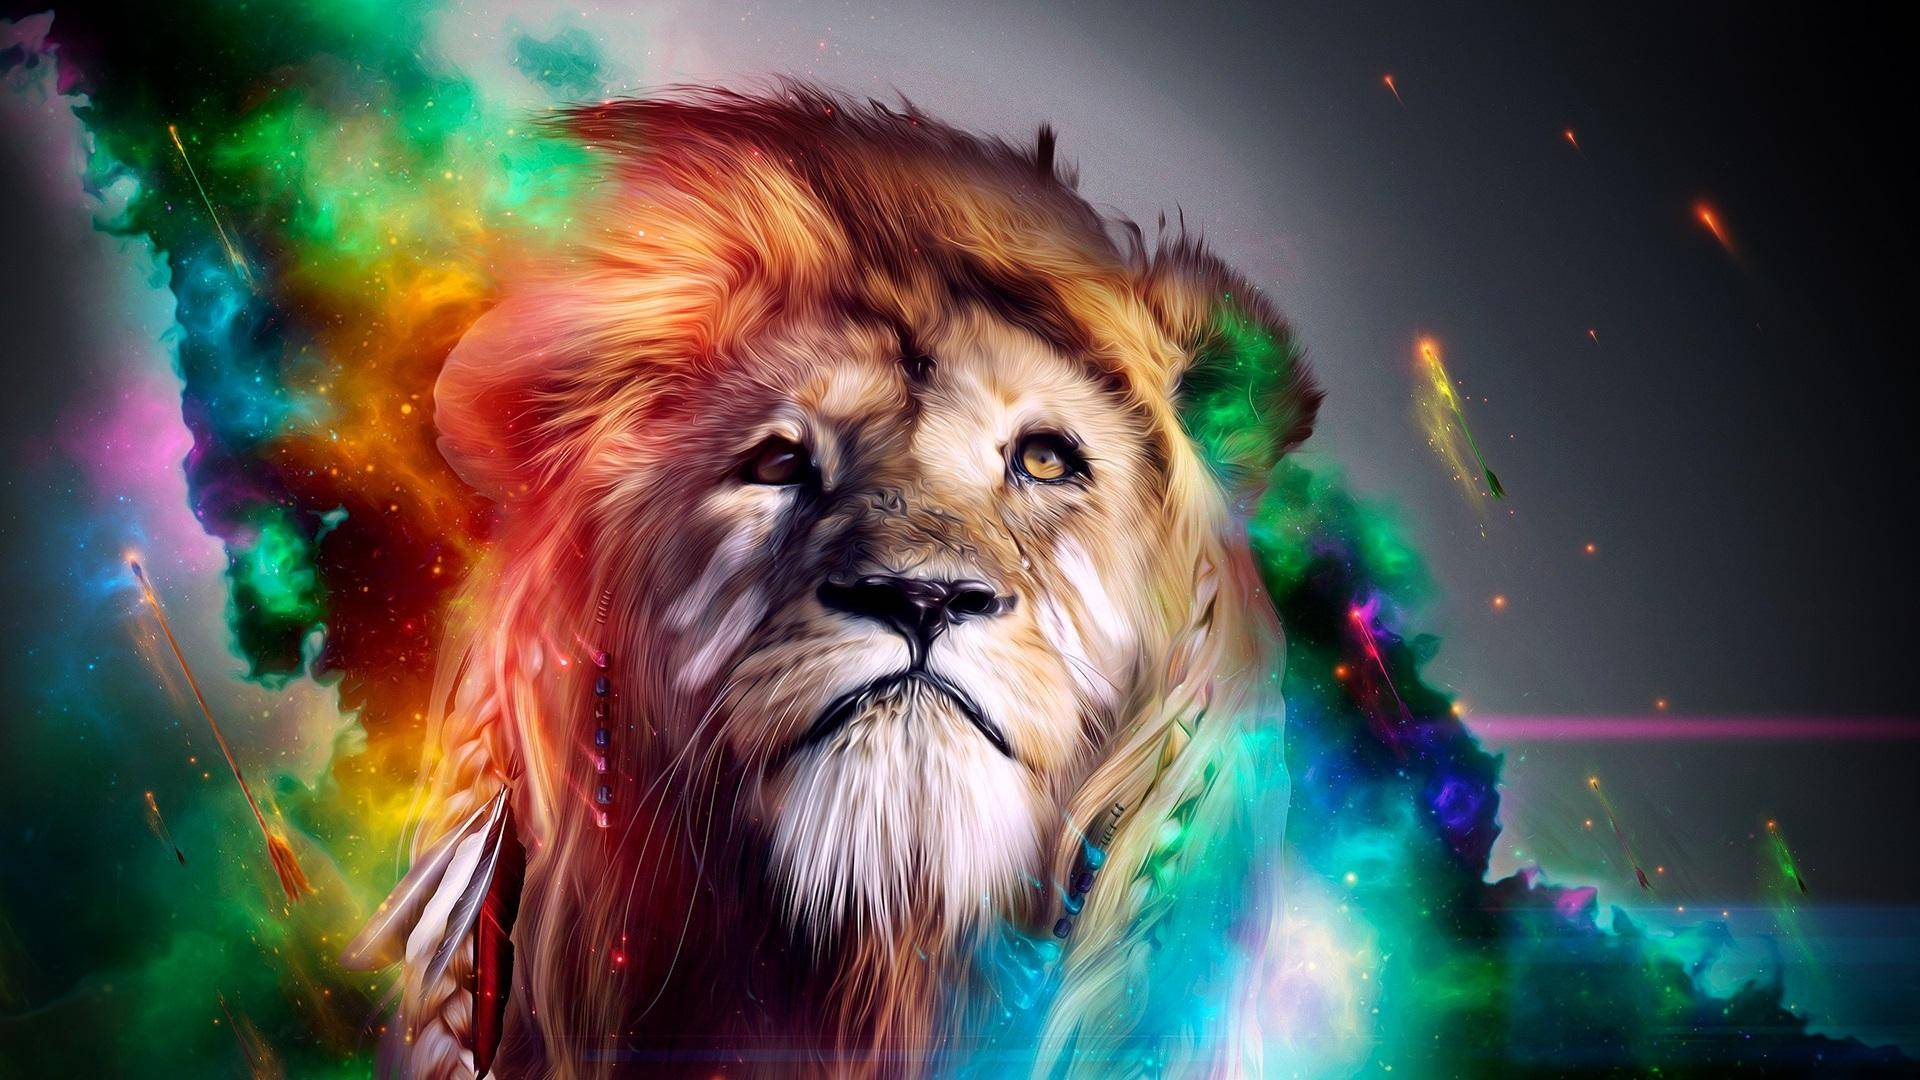 Abstract Lion Wallpaper Sf Wallpaper